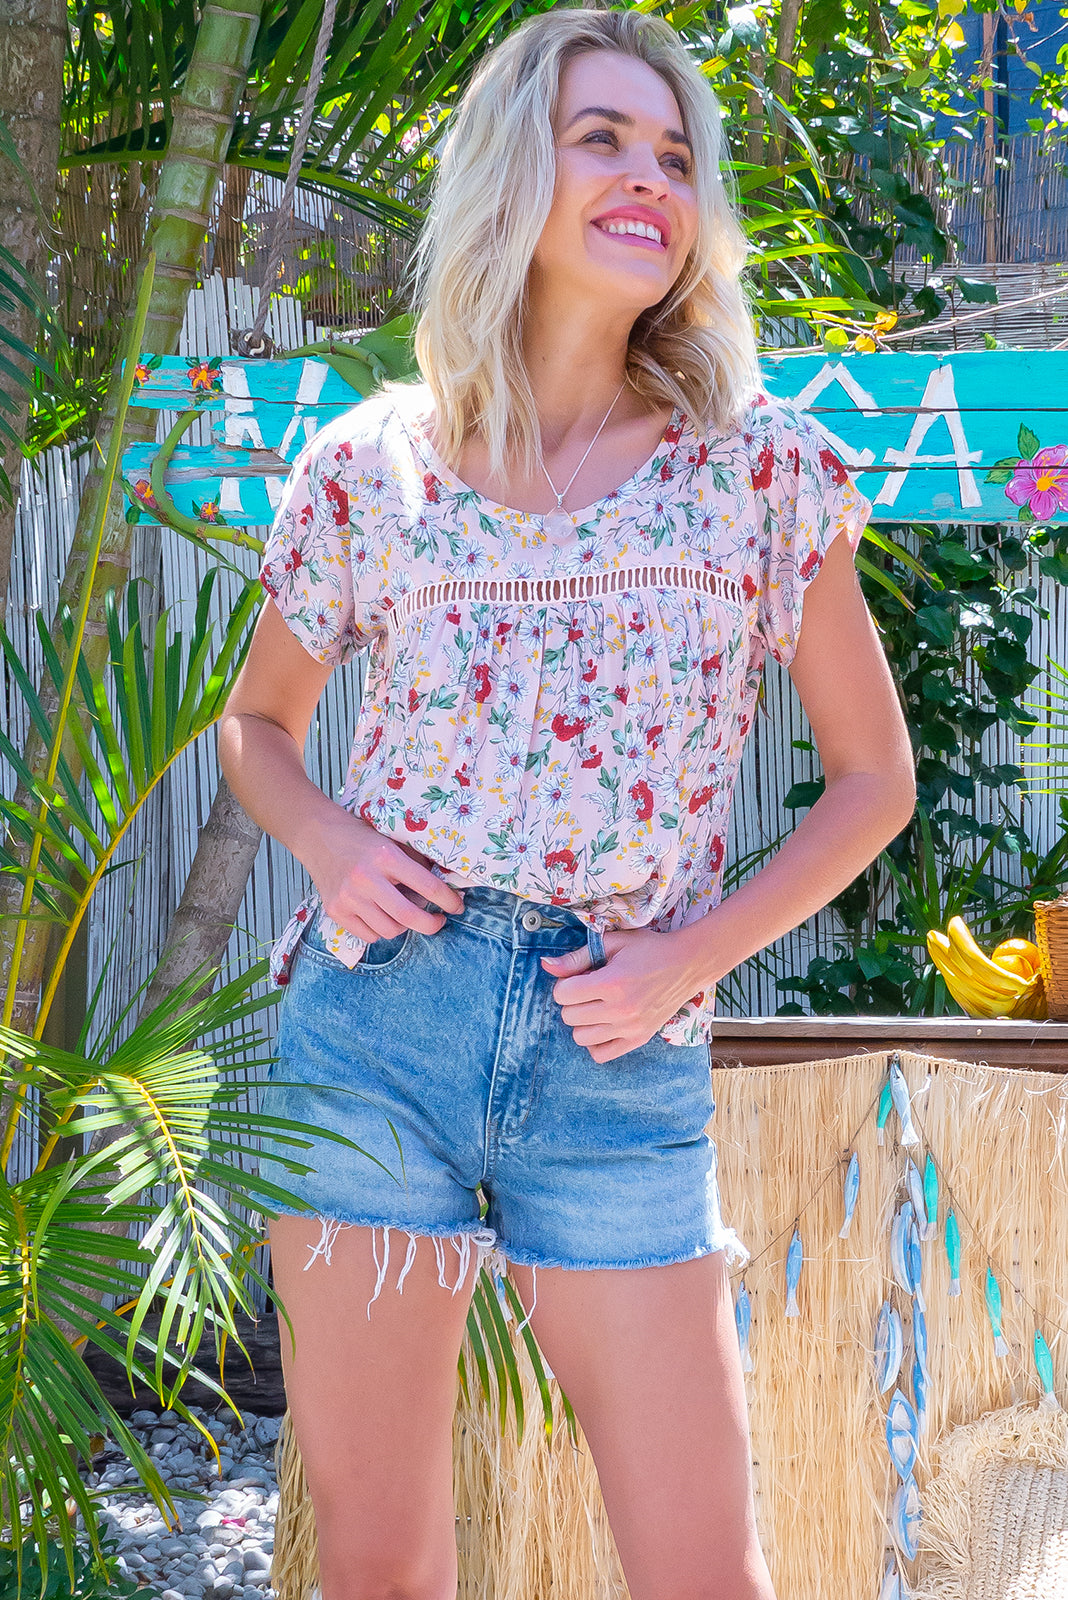 The Day Tripper Pink Perfection Top is lightweight, airy and bloused fit design featuring Scooped neckline, lace insert across chest, cap sleeves, small split in side seams for comfort and 100% viscose in pale pink base with daisy and sweet wildflower print.